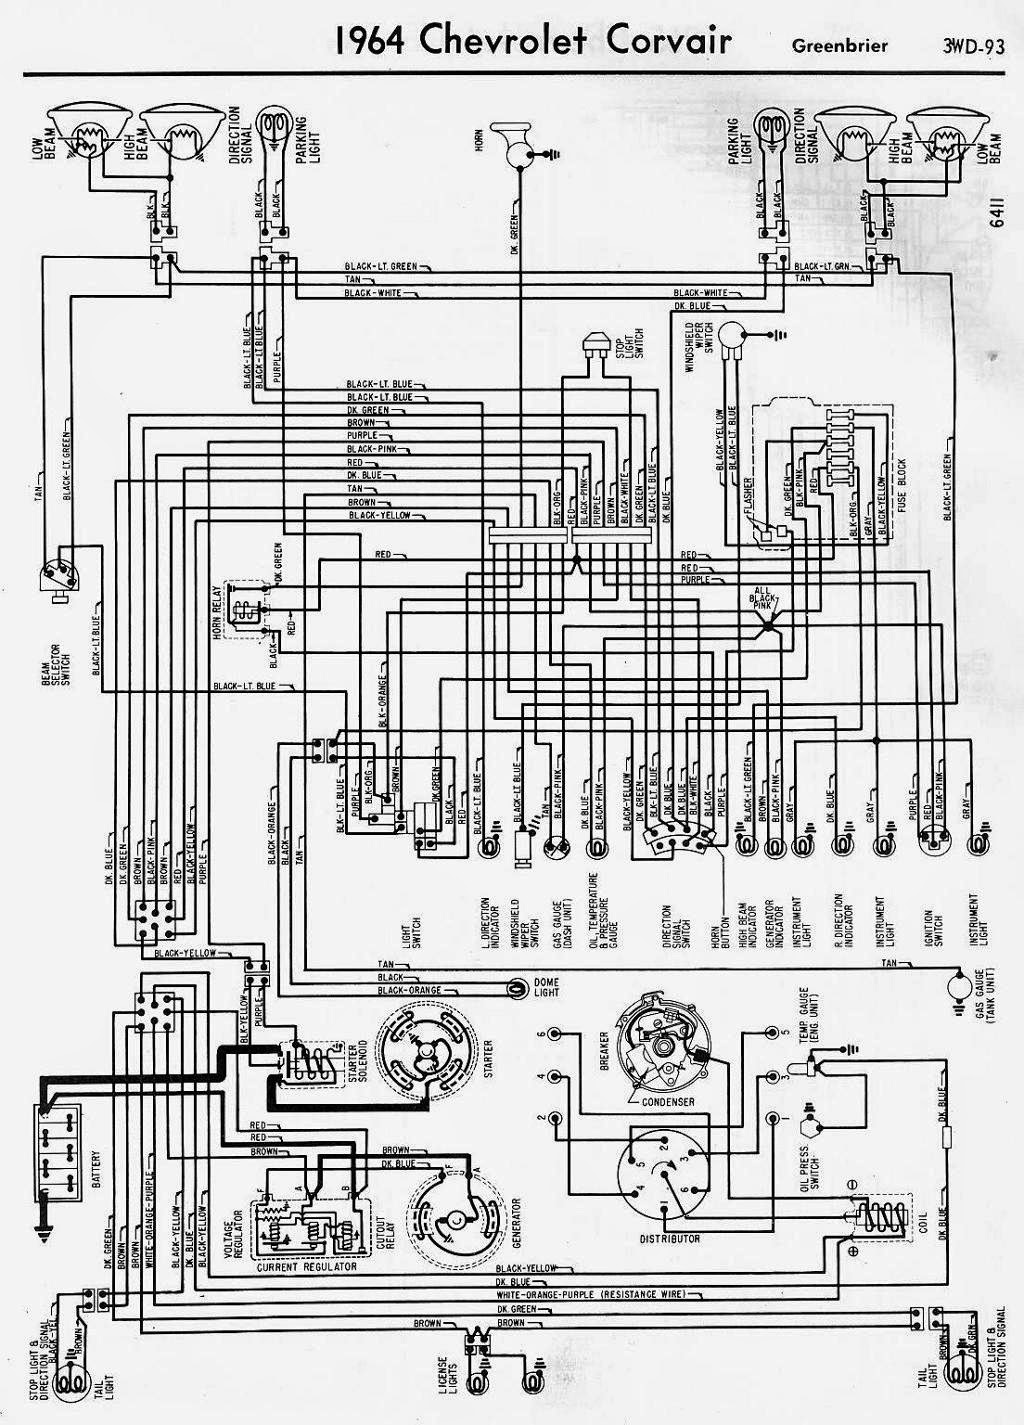 medium resolution of 1964 chevrolet corvair greenbrier wiring diagram schematic wiring